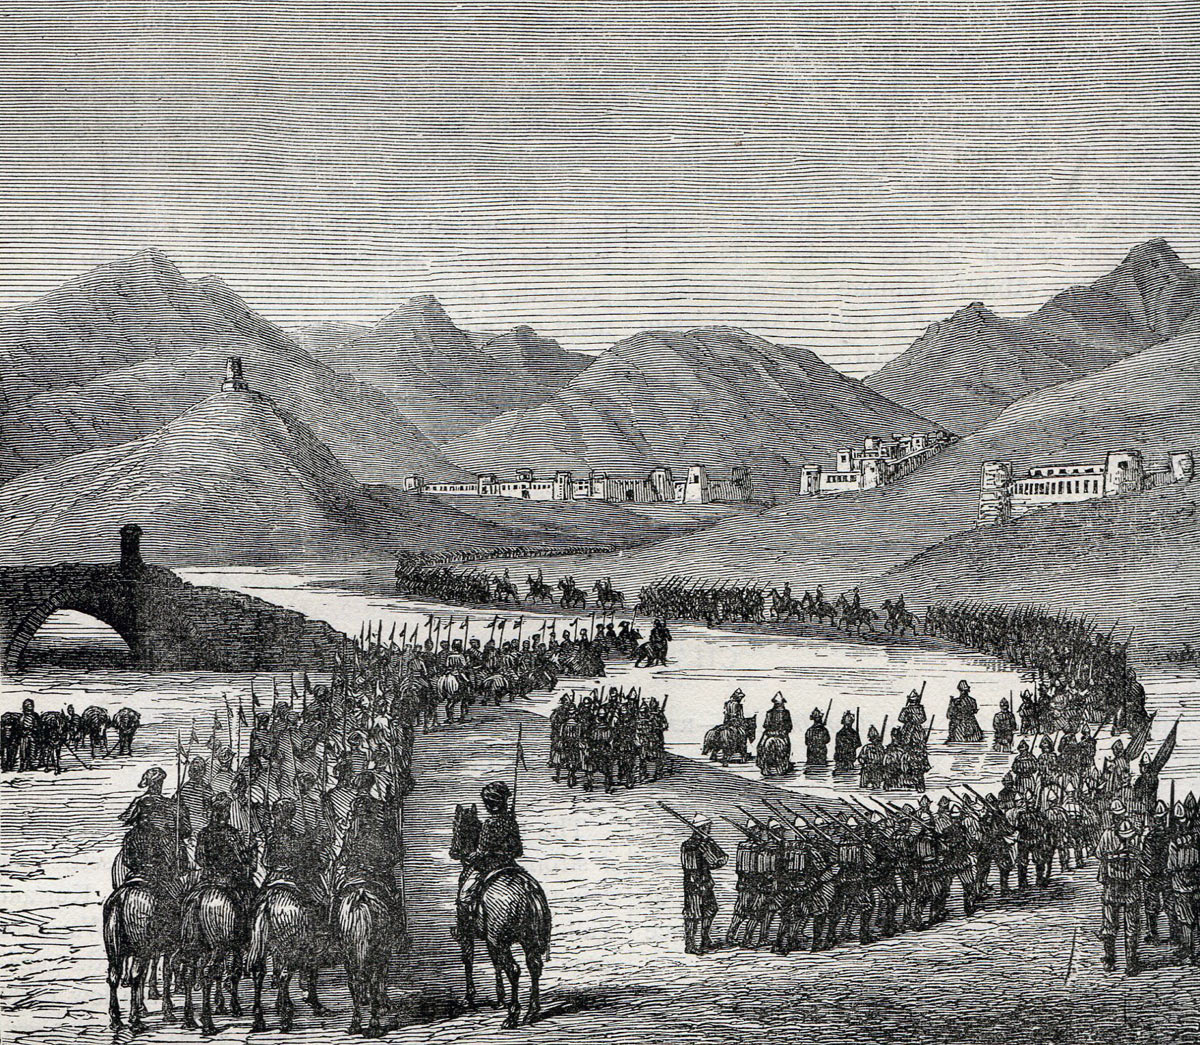 General Ross's division crossing the Logar River, marching to meet General Stewart's division: Battle of Ahmed Khel on 19th April 1880 in the Second Afghan War